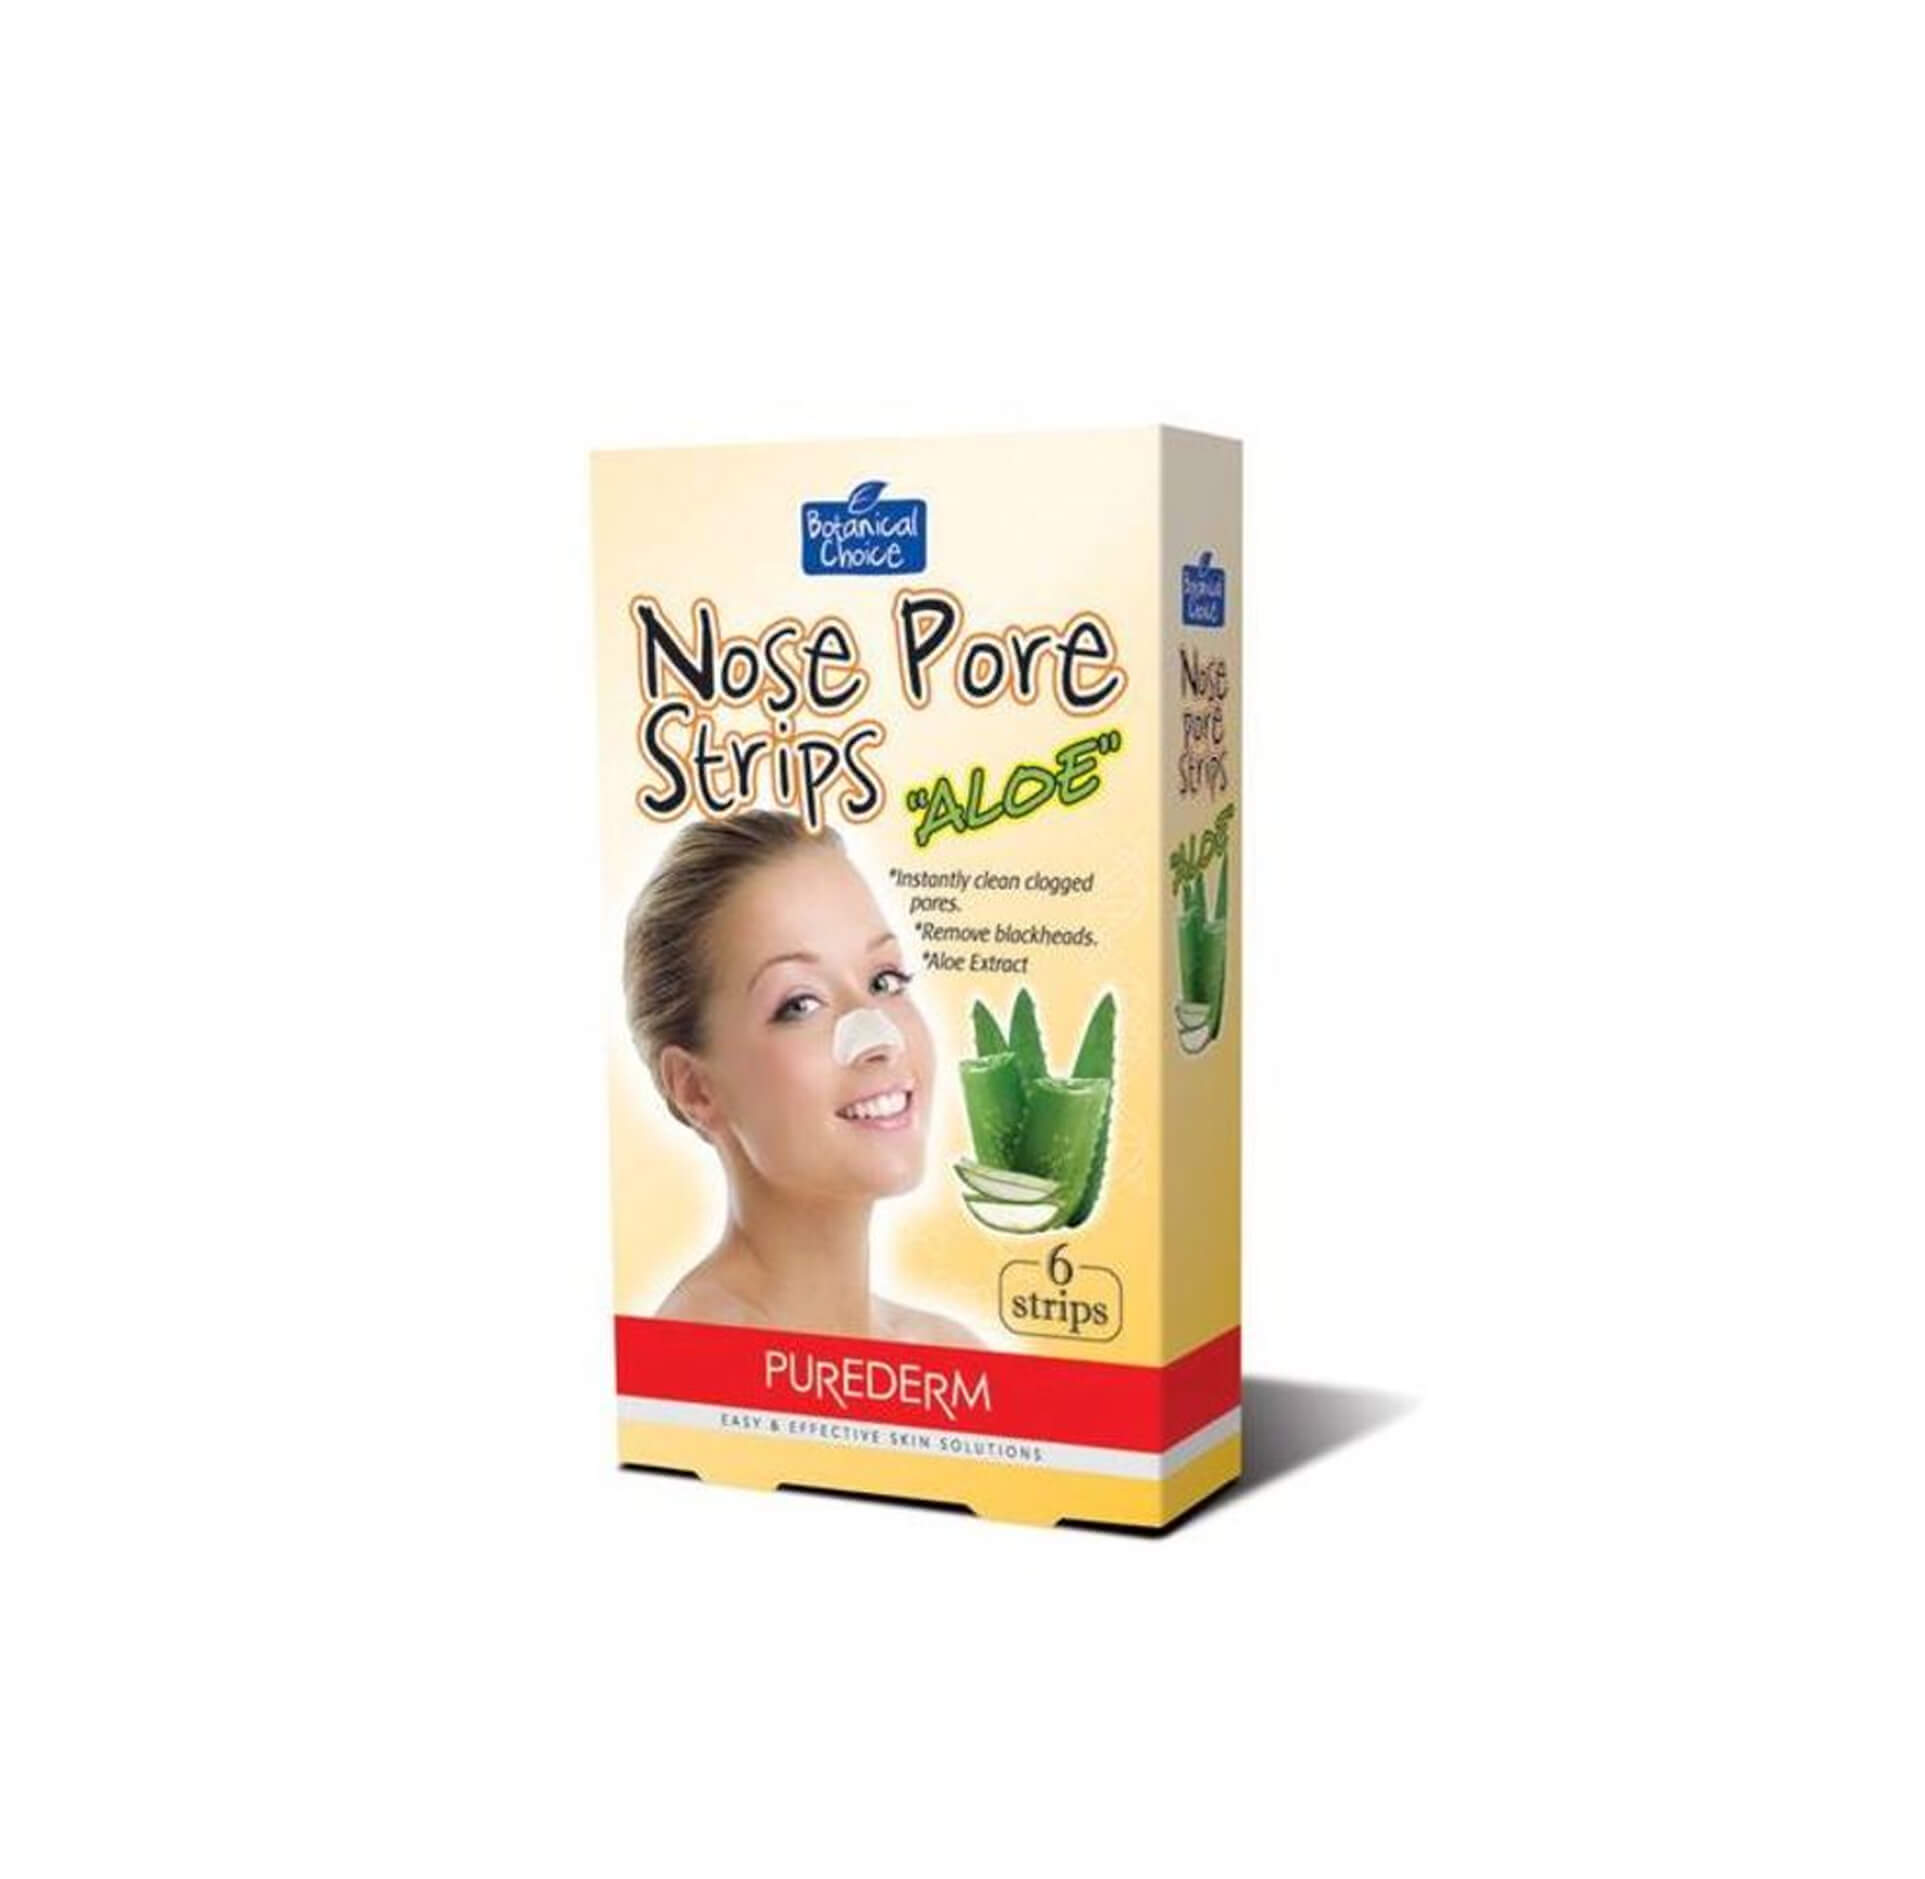 Nose Pore Strips Aloe